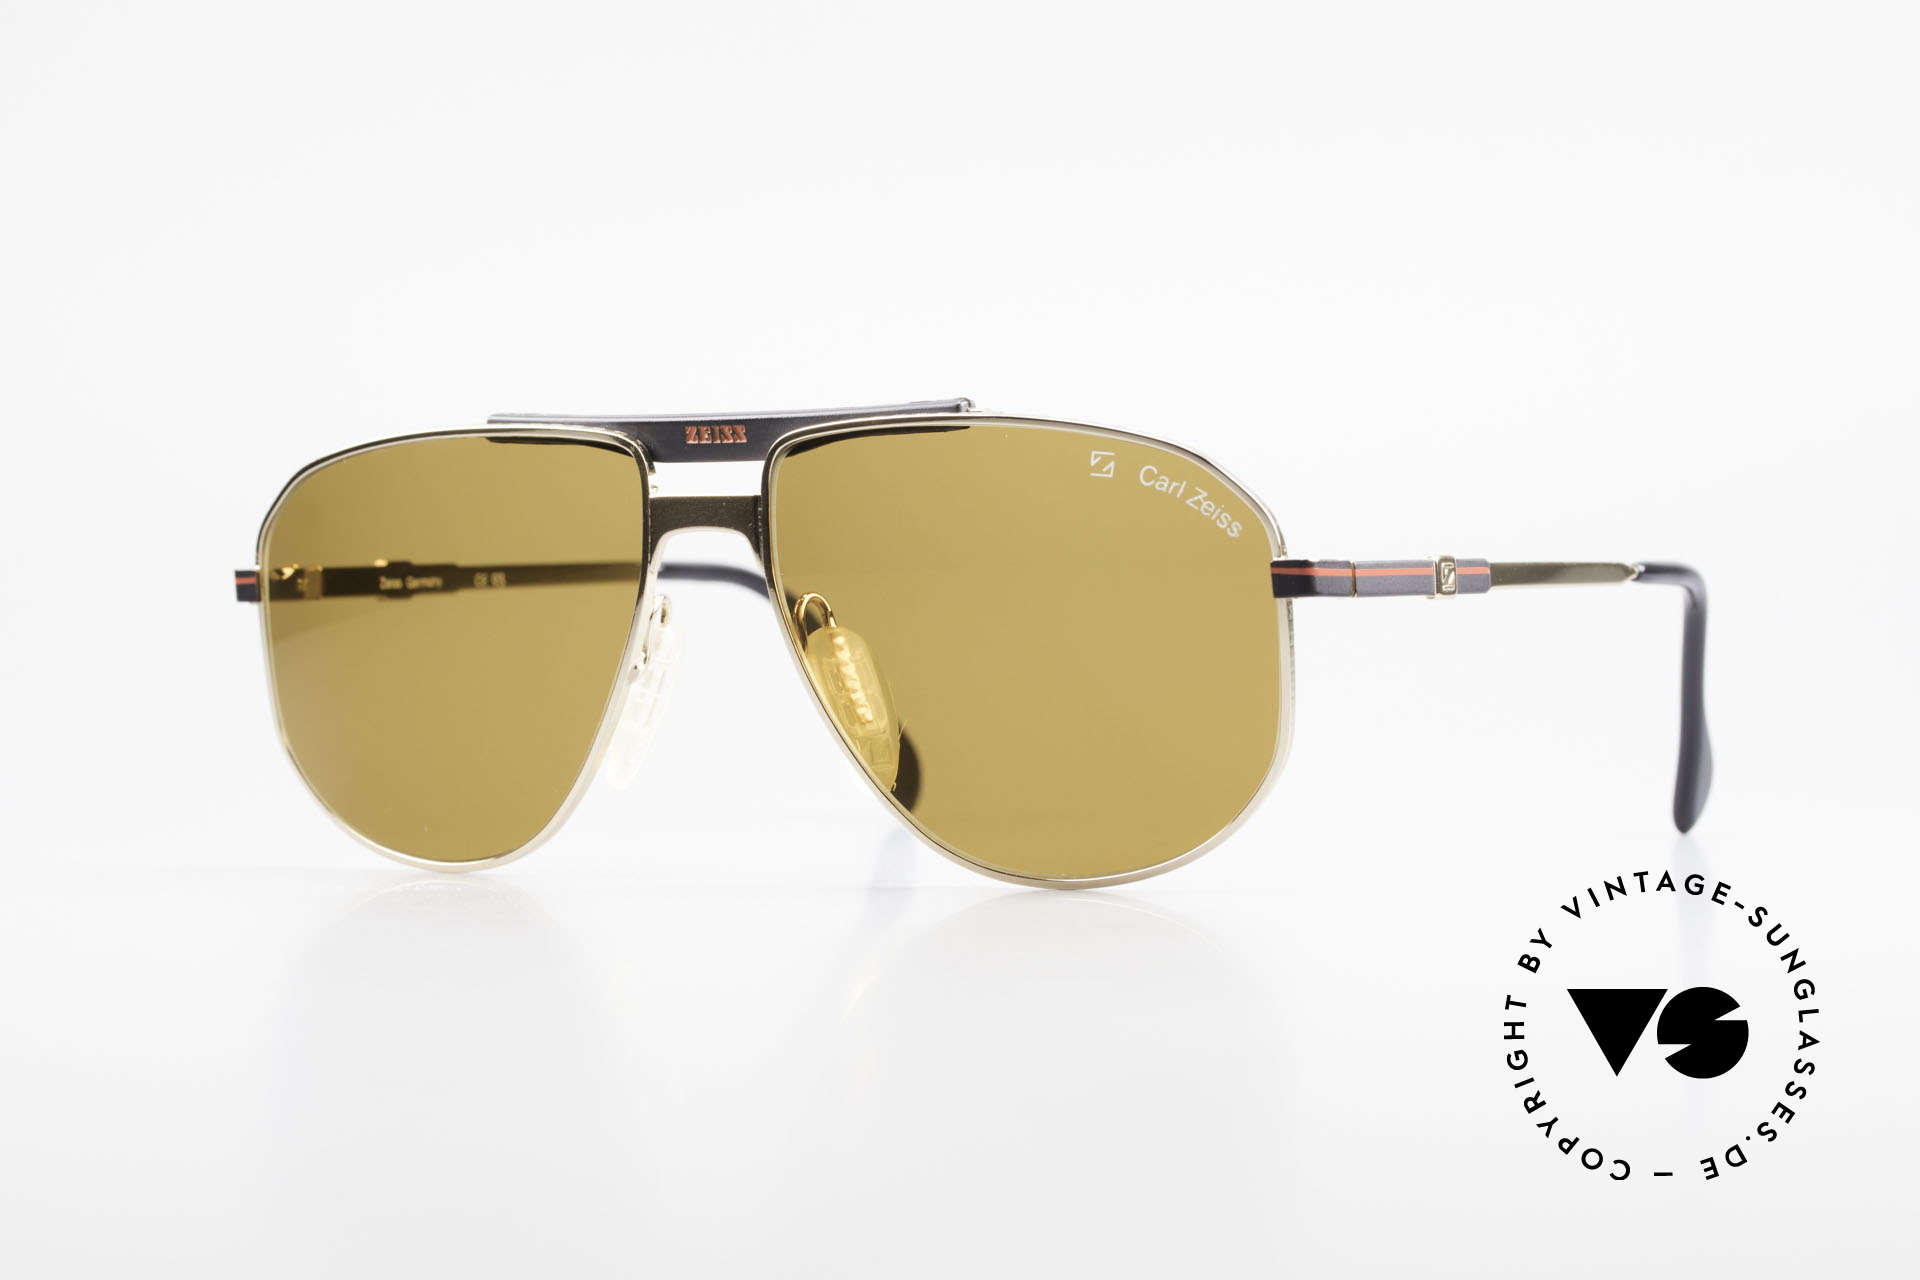 Zeiss 9934 90's True Vintage Sunglasses, high-end ZEISS Germany 1990's vintage sunglasses, Made for Men